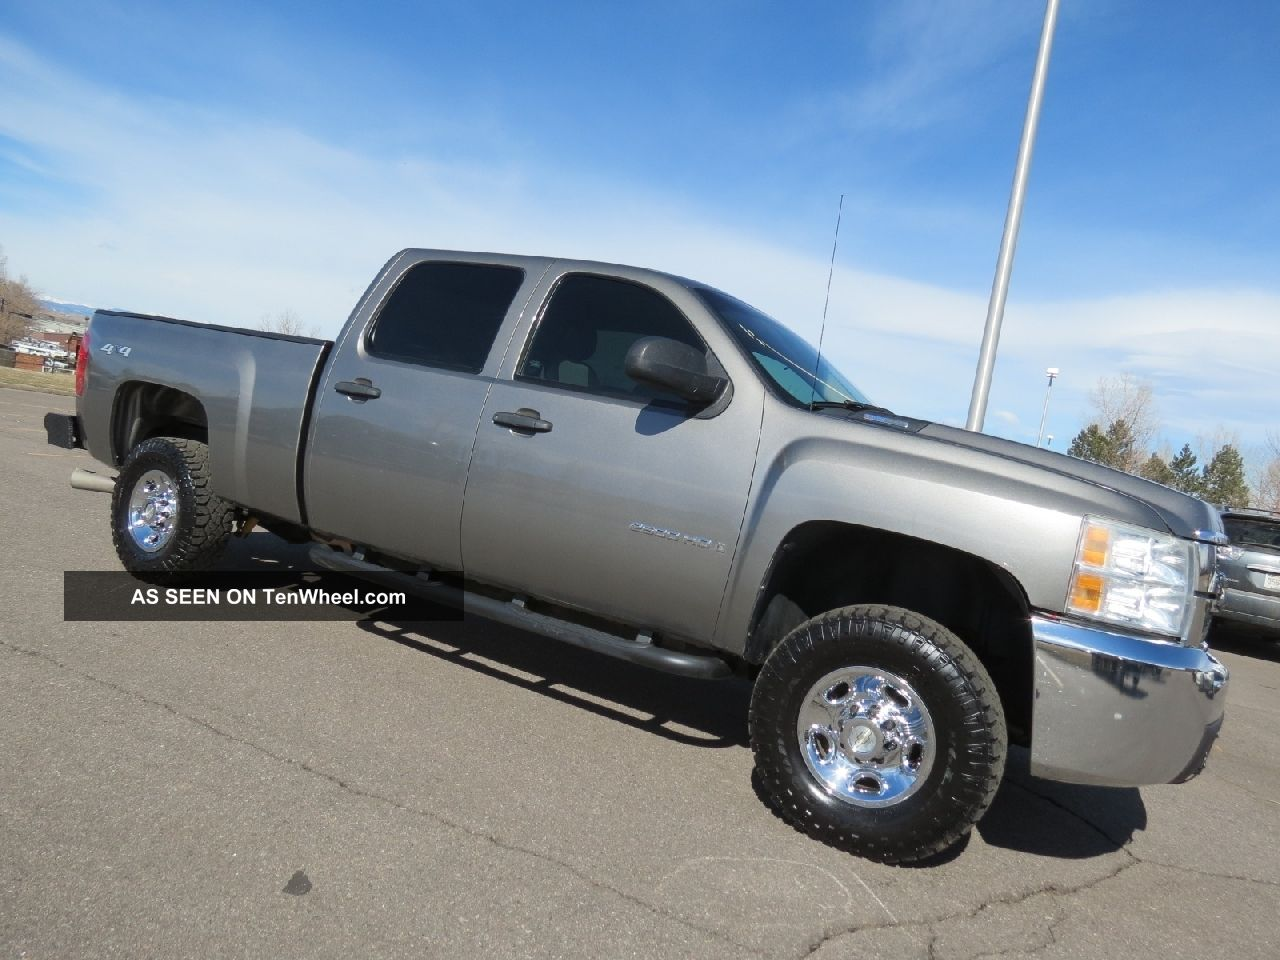 2007 chevrolet silverado 2500 hd crew cab short bed diesel 4x4 style. Black Bedroom Furniture Sets. Home Design Ideas